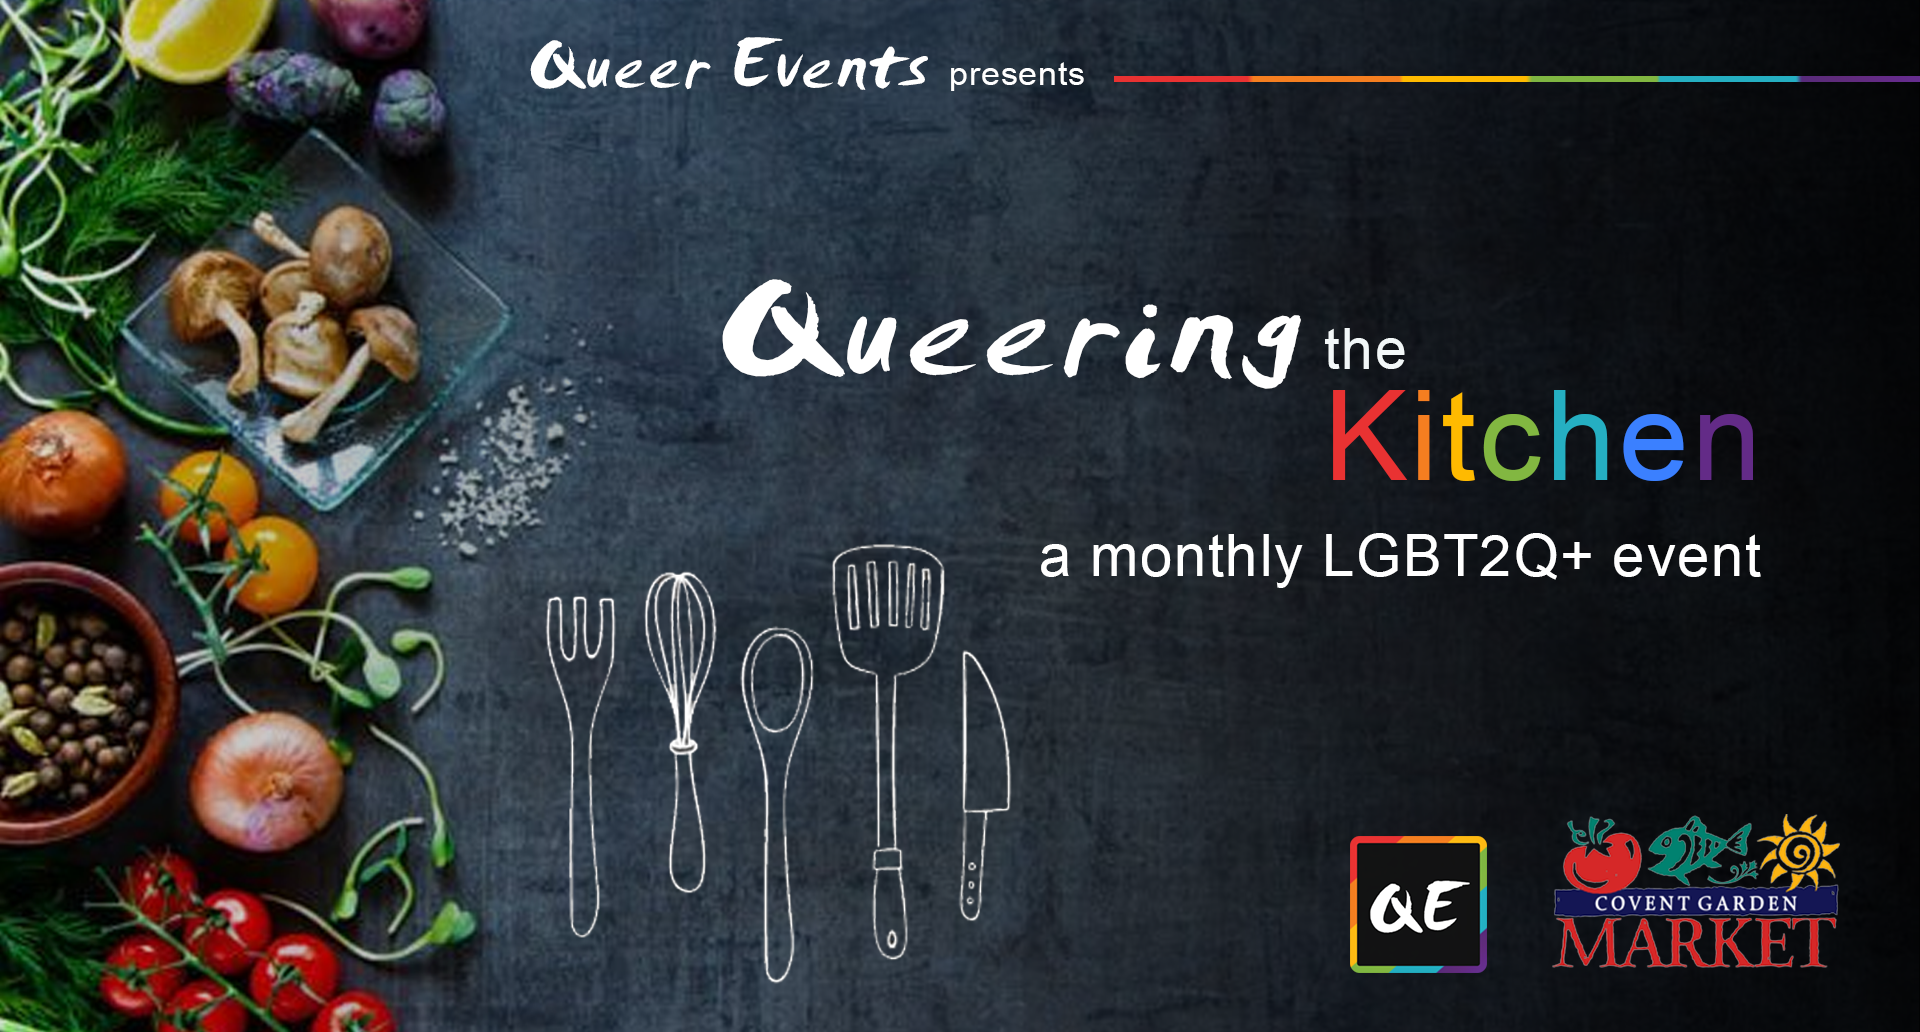 QueerEvents.ca - London Event Listing - Queering the Kitchen presetned by Queer Events banner